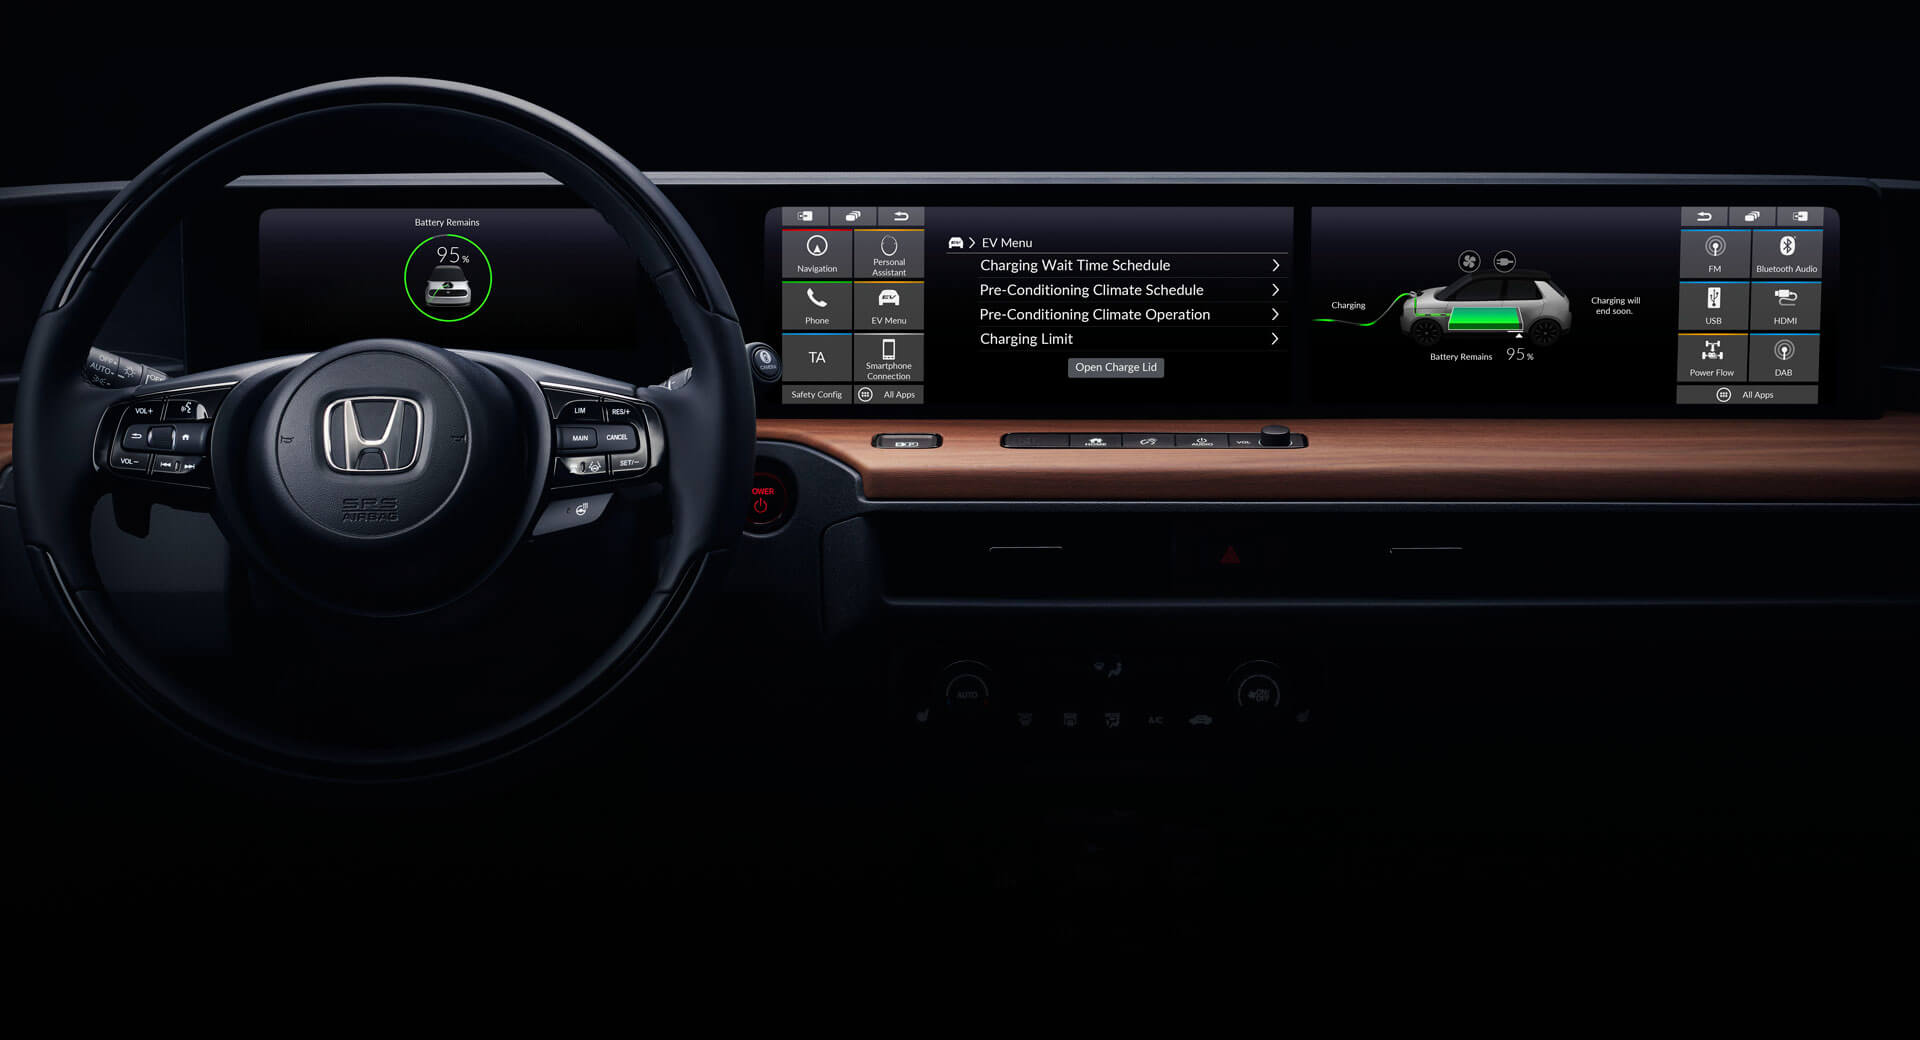 Hondas Ev Prototype Reveals Dashboard Design With Extra Wide Screen